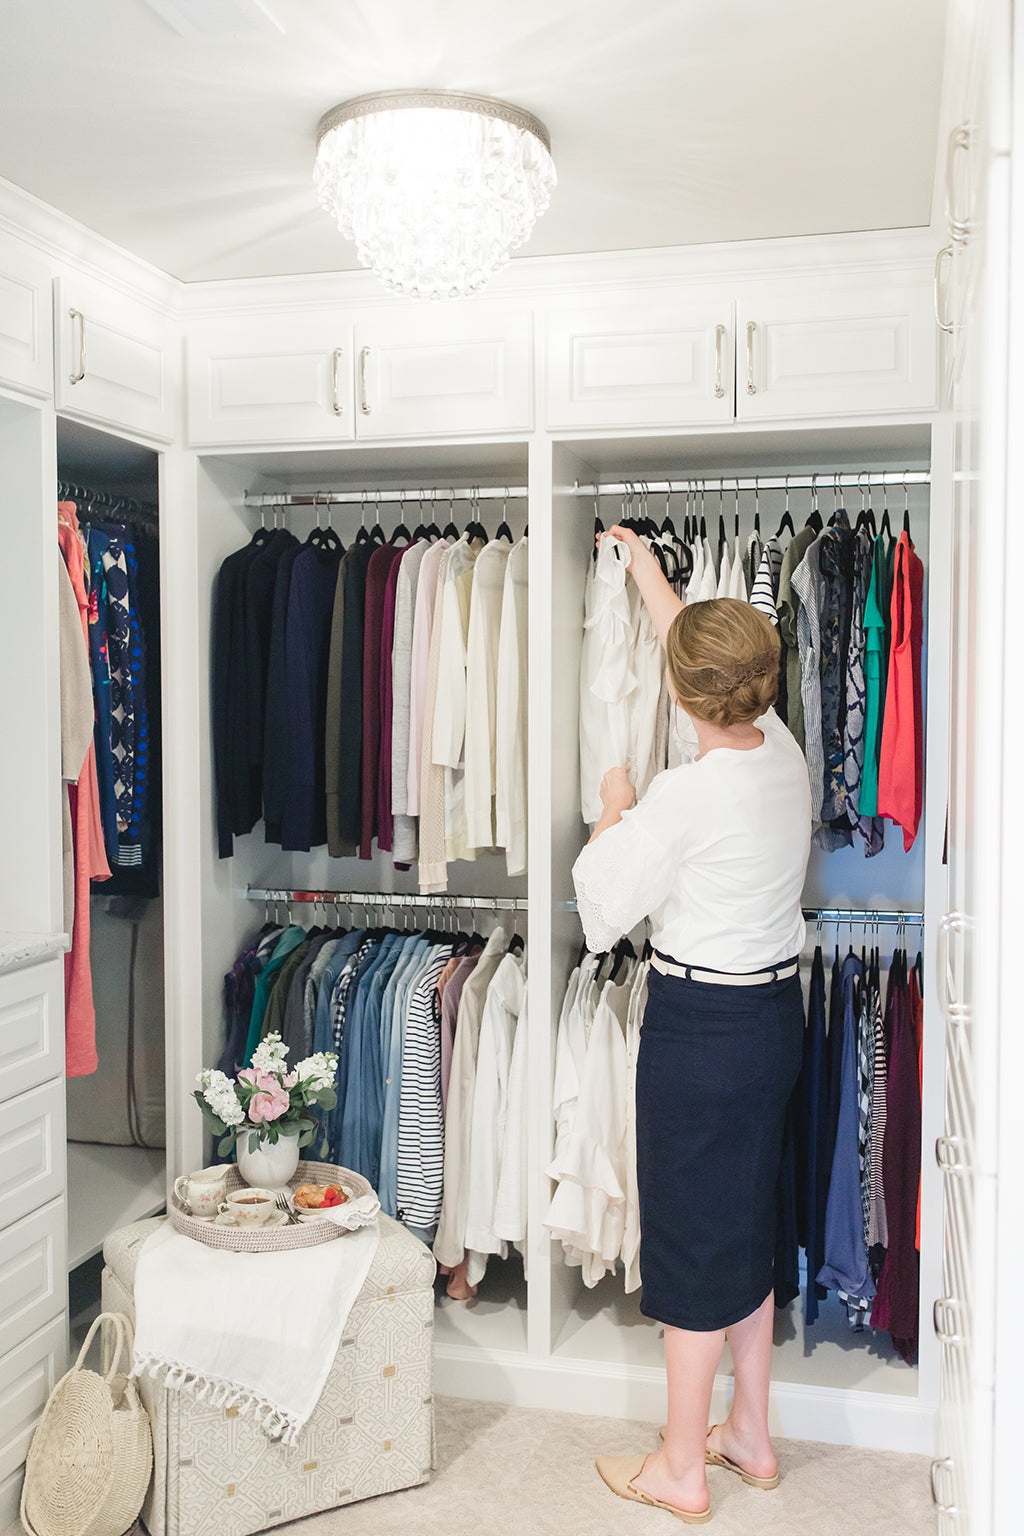 Tips on how to organize your clothes closet!